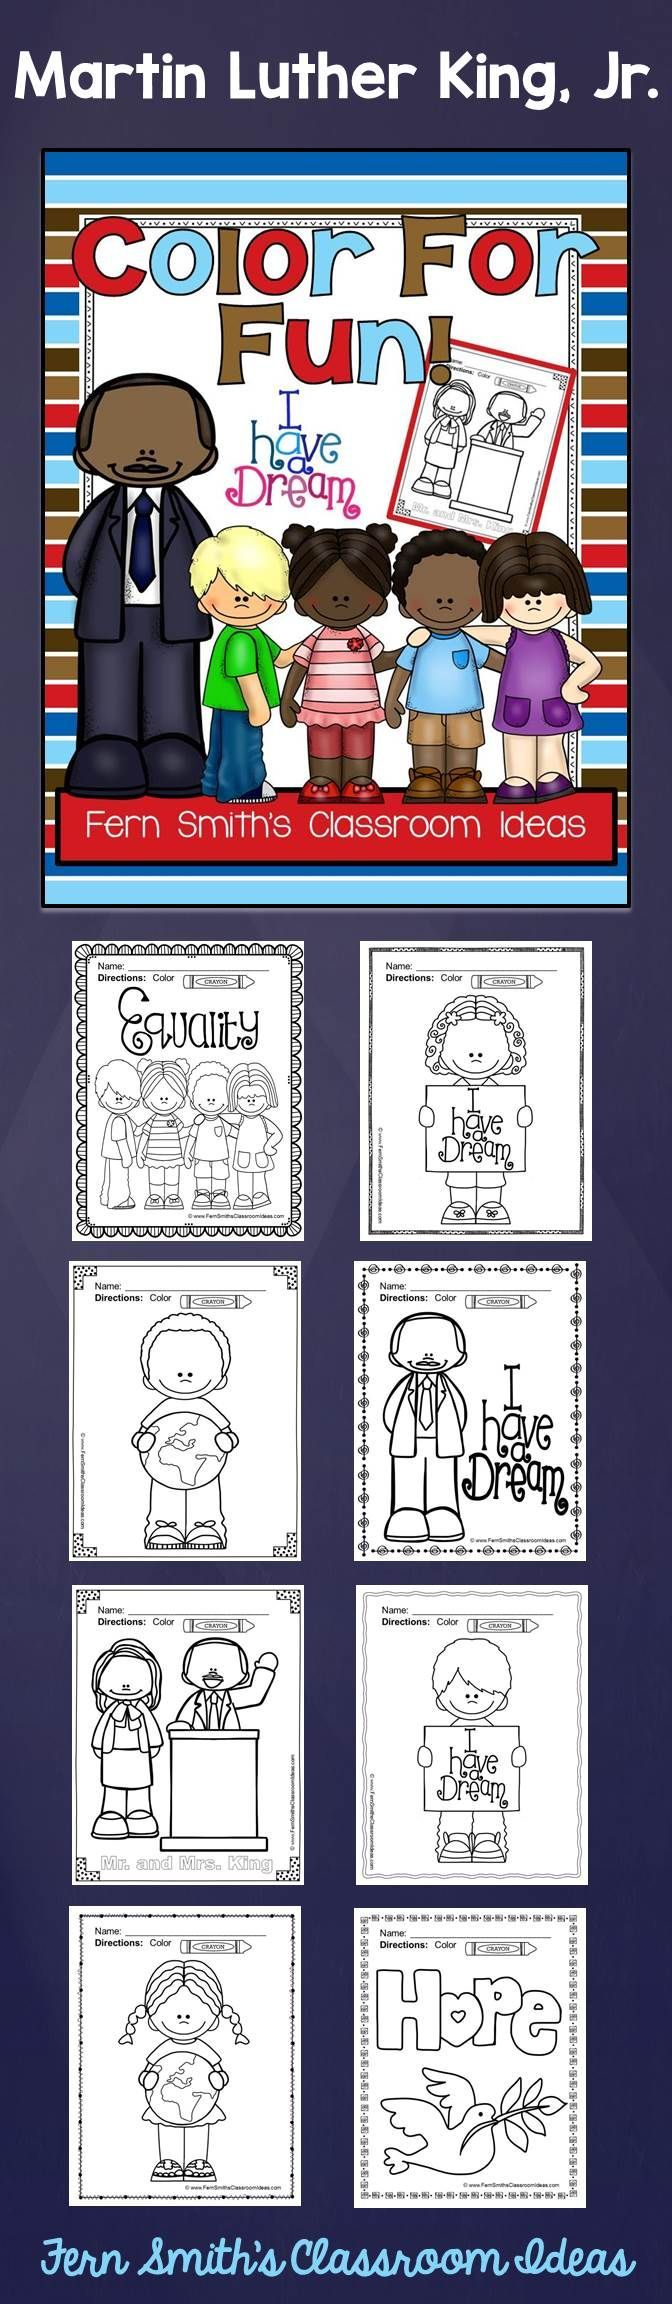 FREE Martin Luther King Jr Color For Fun Printable Coloring Pages